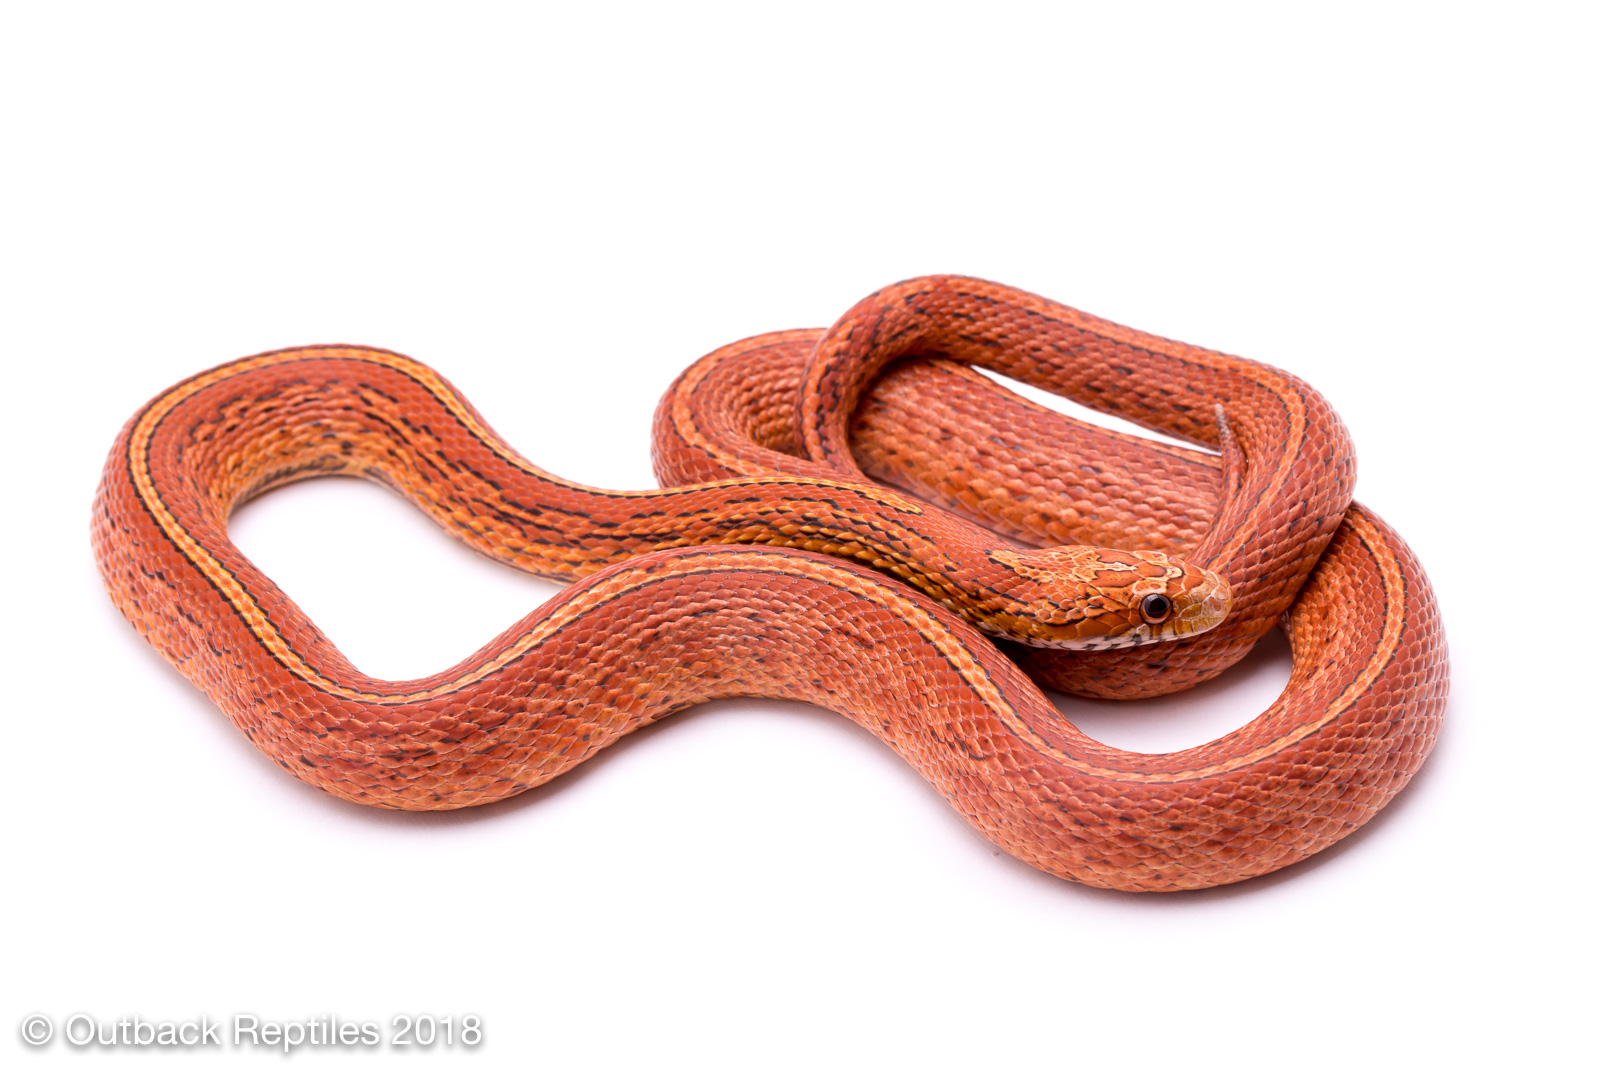 Tessera Corn Snake for Sale | Outback Reptiles